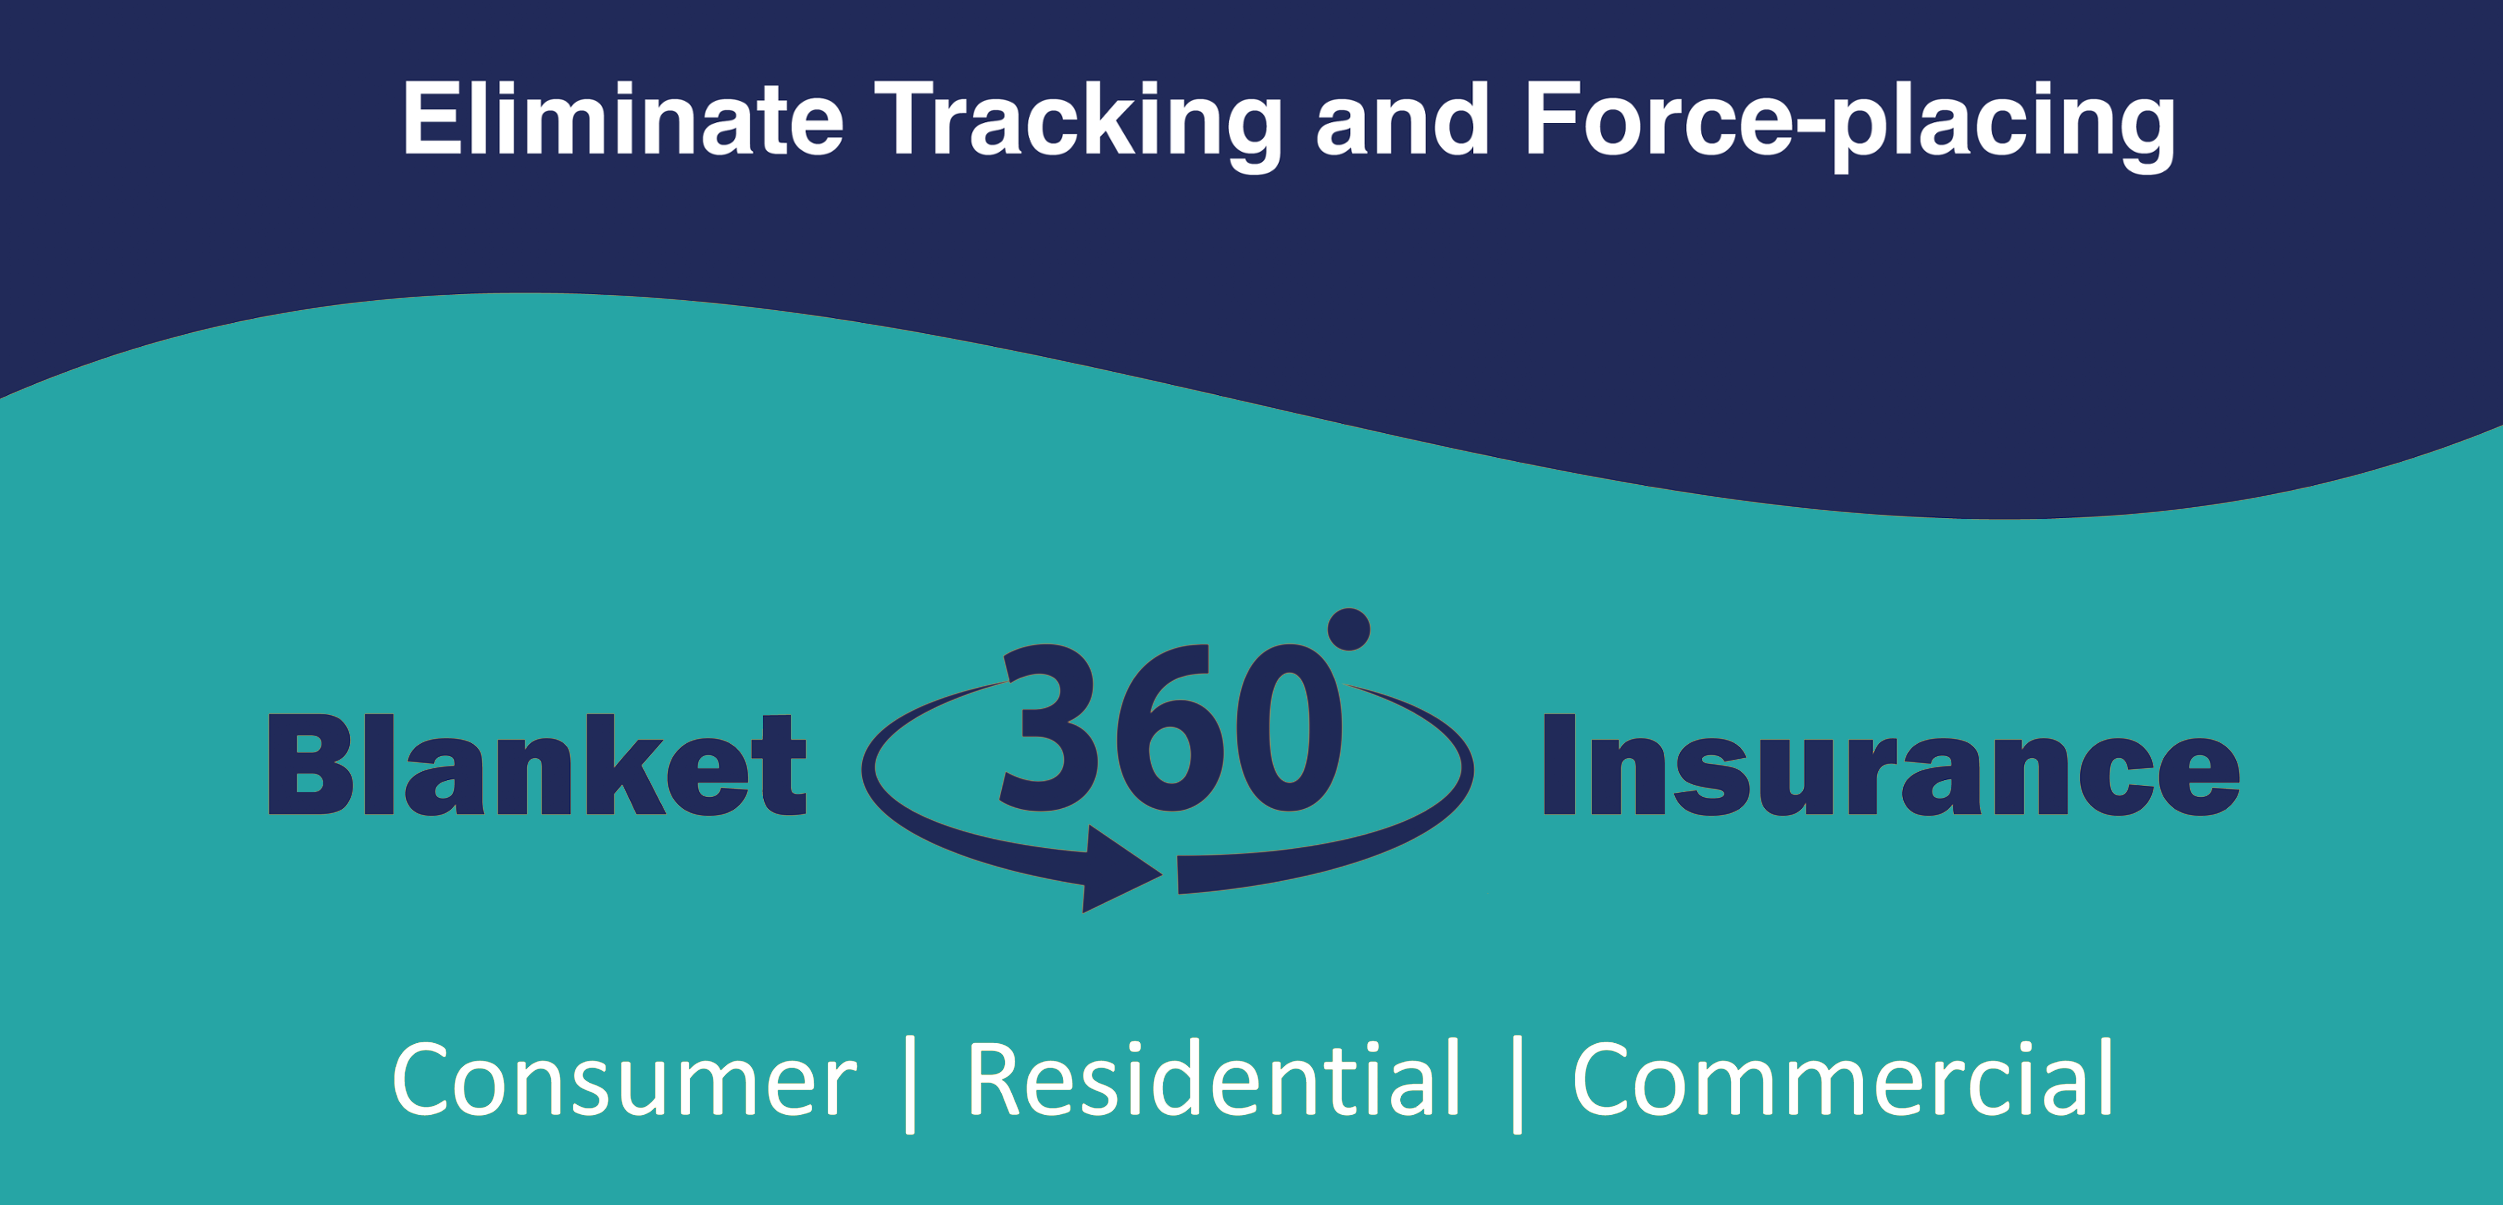 Learn more about Blanket 360 Insurance from Golden Eagle